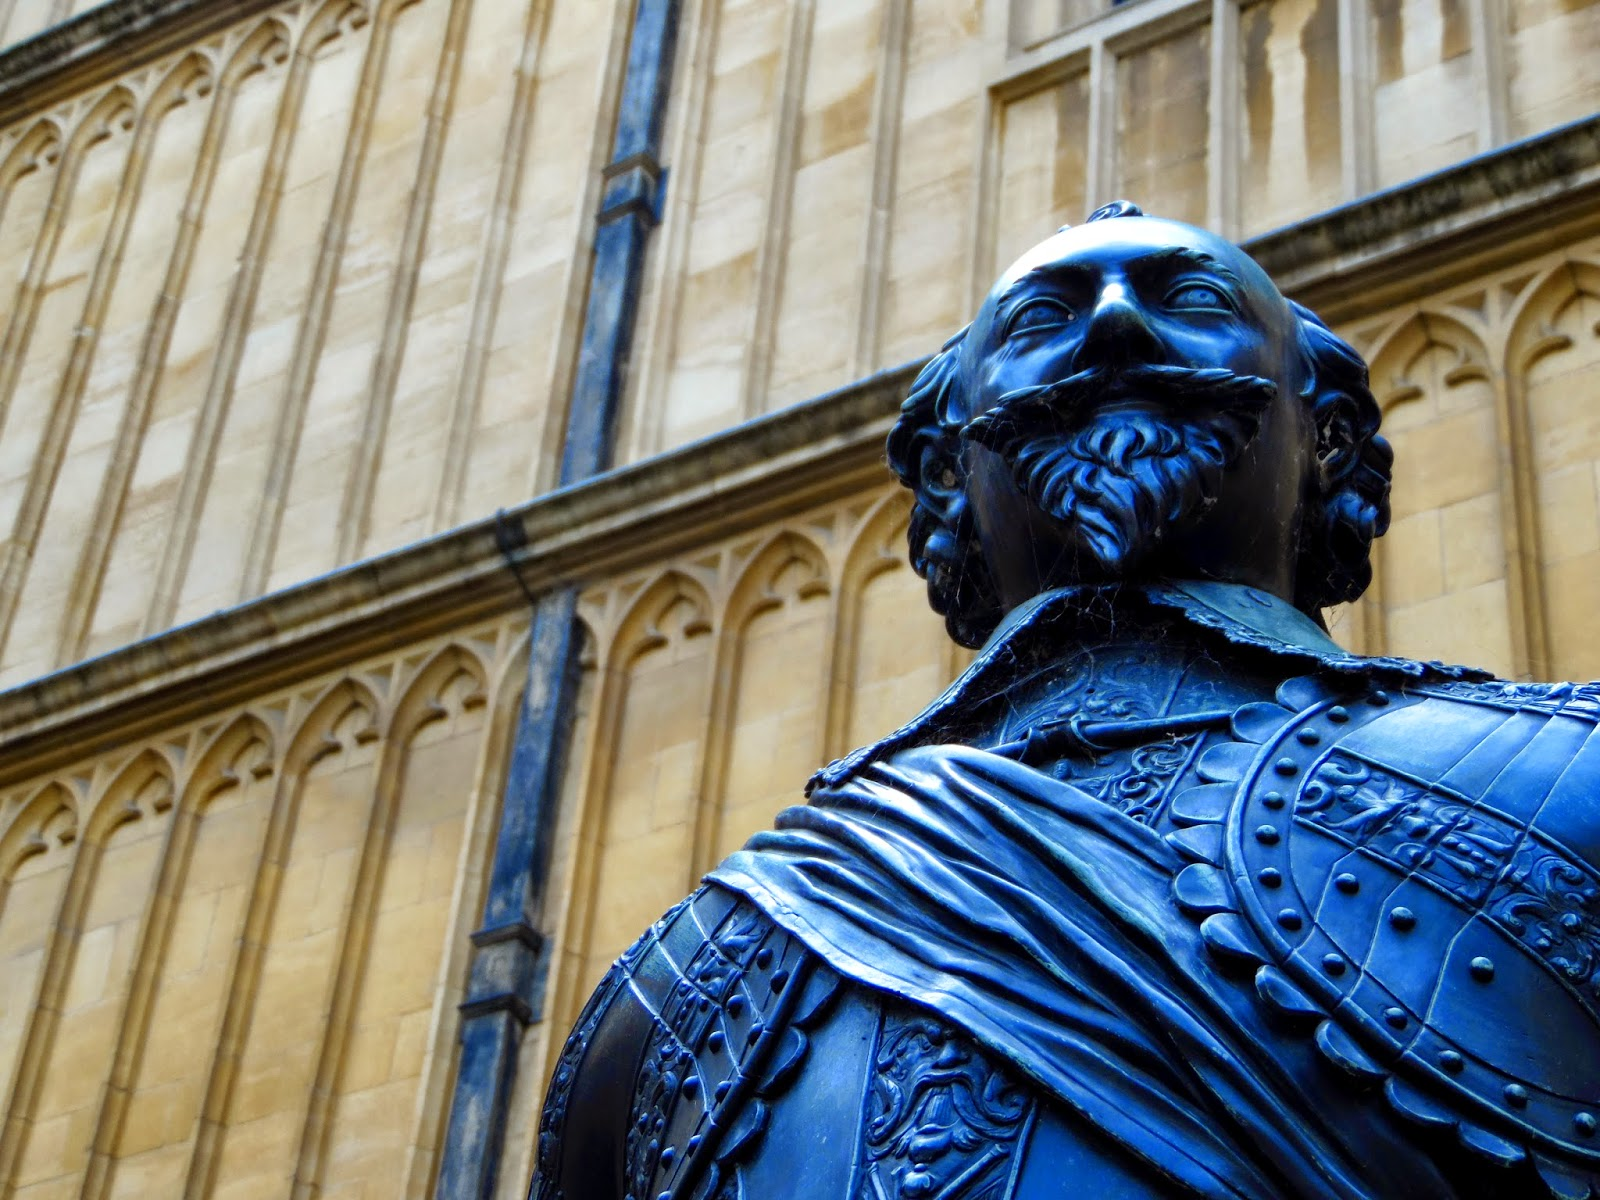 Oxford et son université